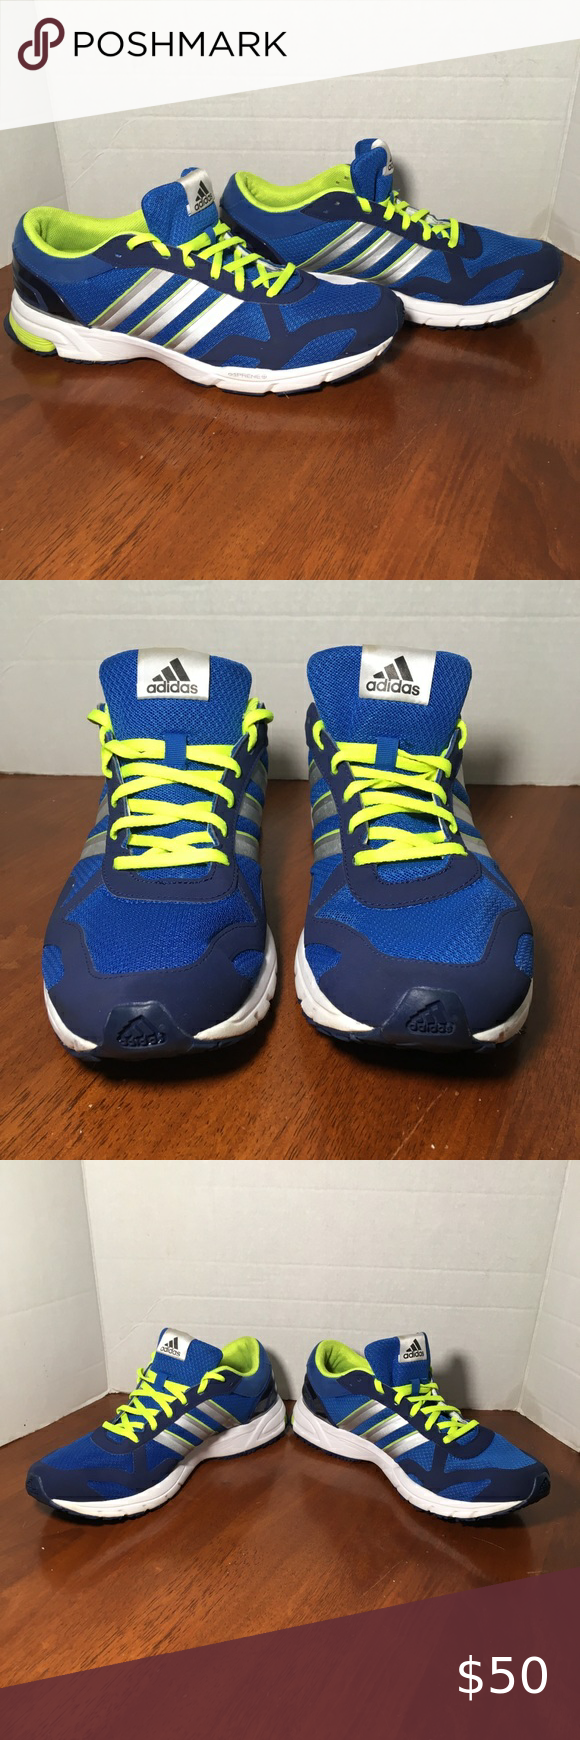 acantilado Tan rápido como un flash Arreglo  Adidas Mens Adiprene + Blue & Yellow Marathon 10.5 | Adidas outfit shoes,  Adidas shoes outlet, Blue adidas